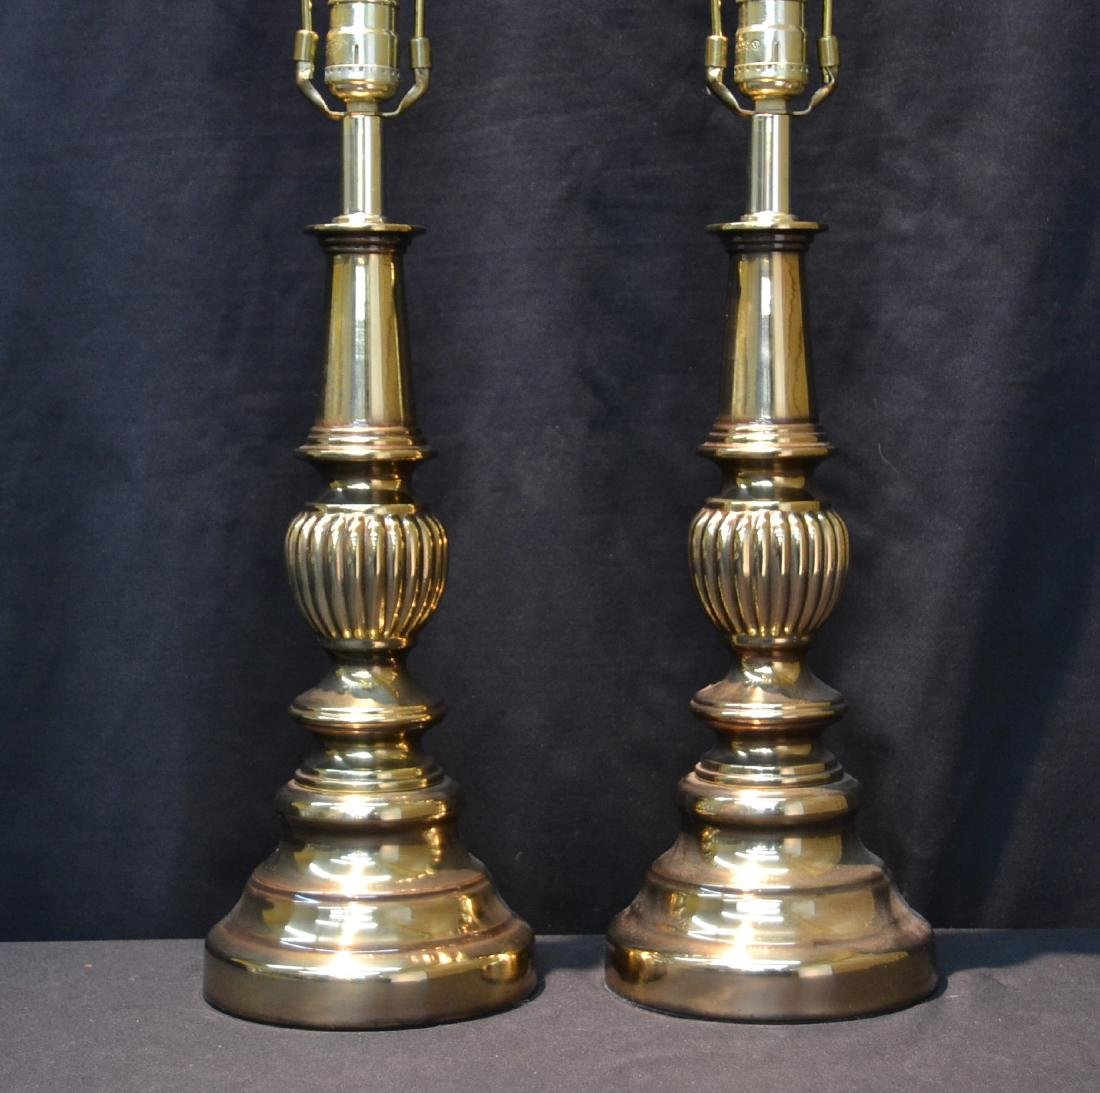 "(Pr) BRASS LAMPS - 6 1/2"" x 26"" TO HARP"